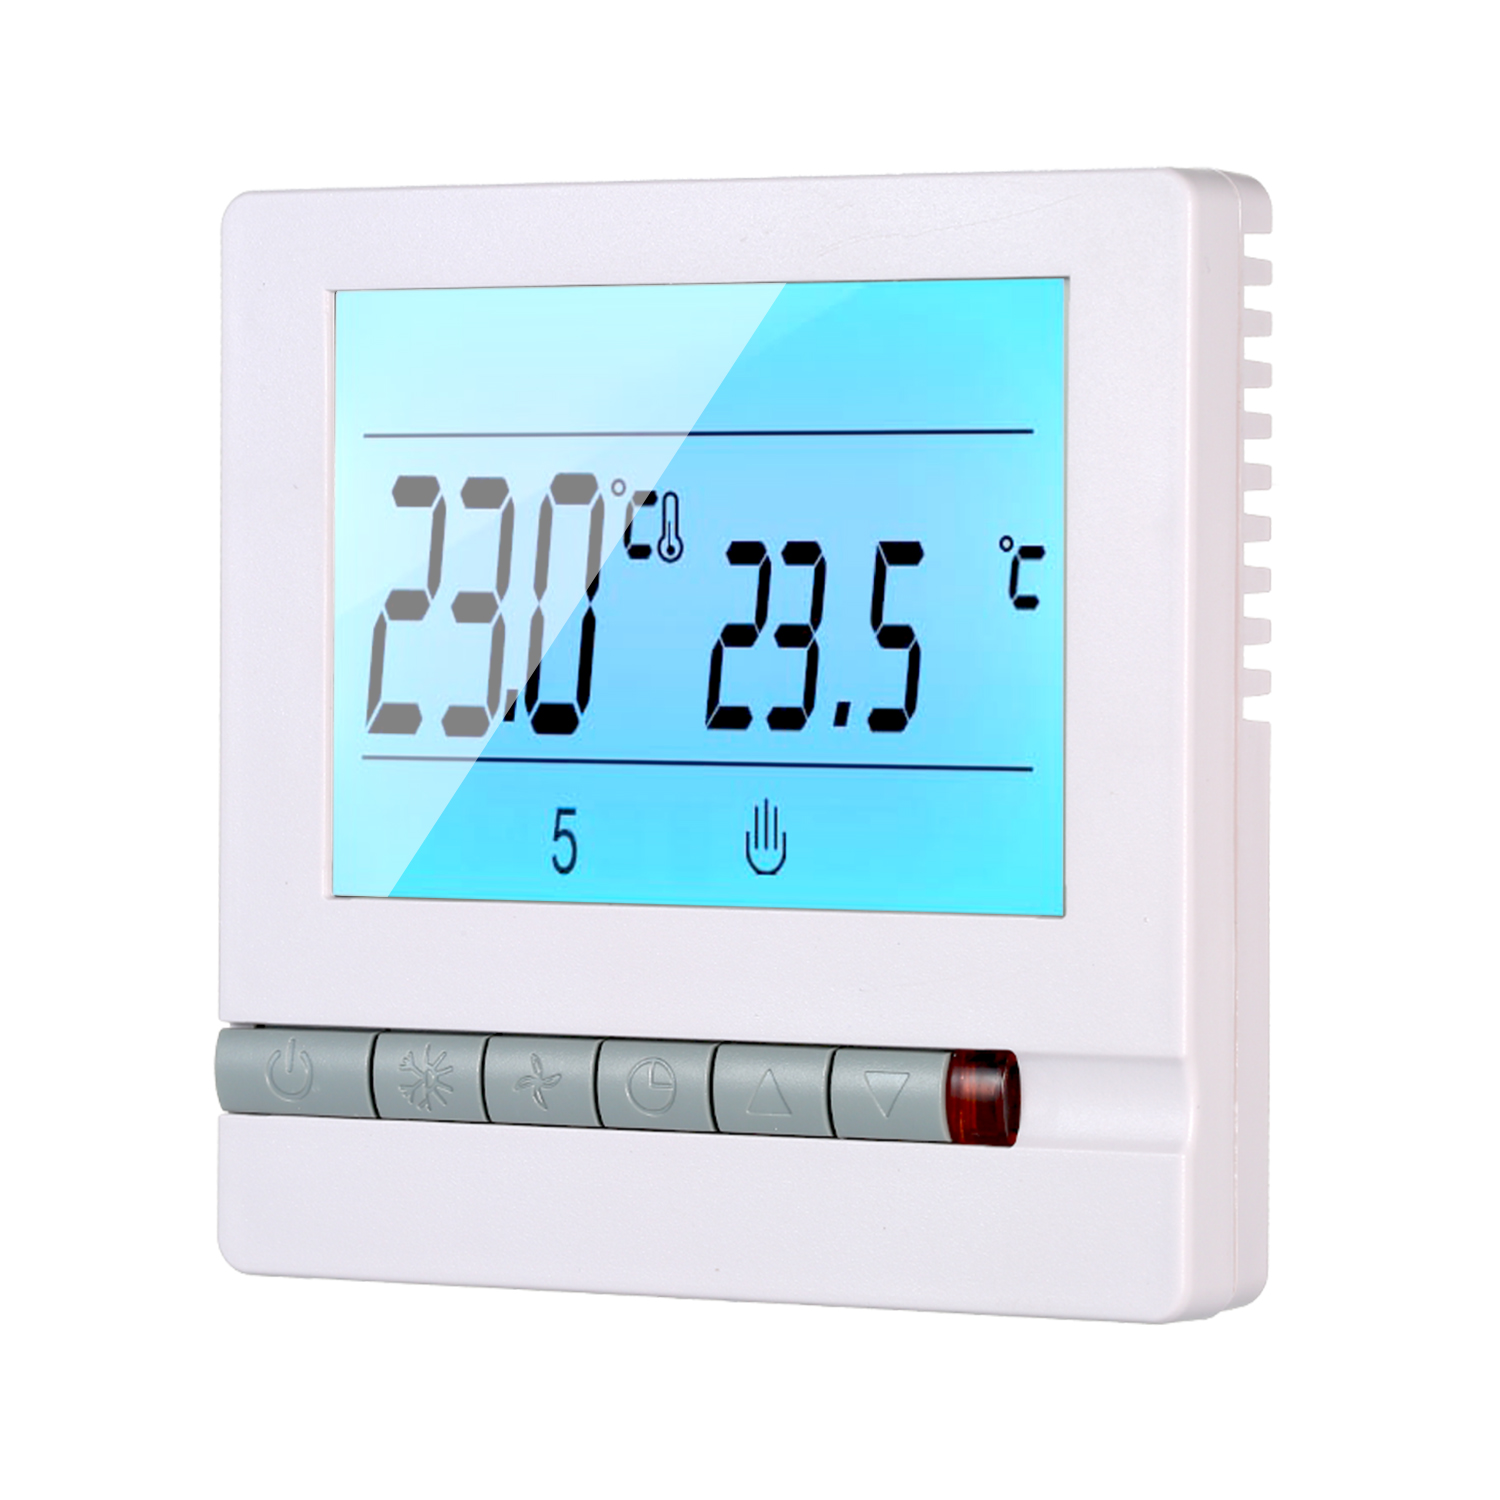 Digital Thermostat 220V AC Temperature Controller Weekly Programmable Heating Room Temperature Control 5 To 60 Degrees Celsius